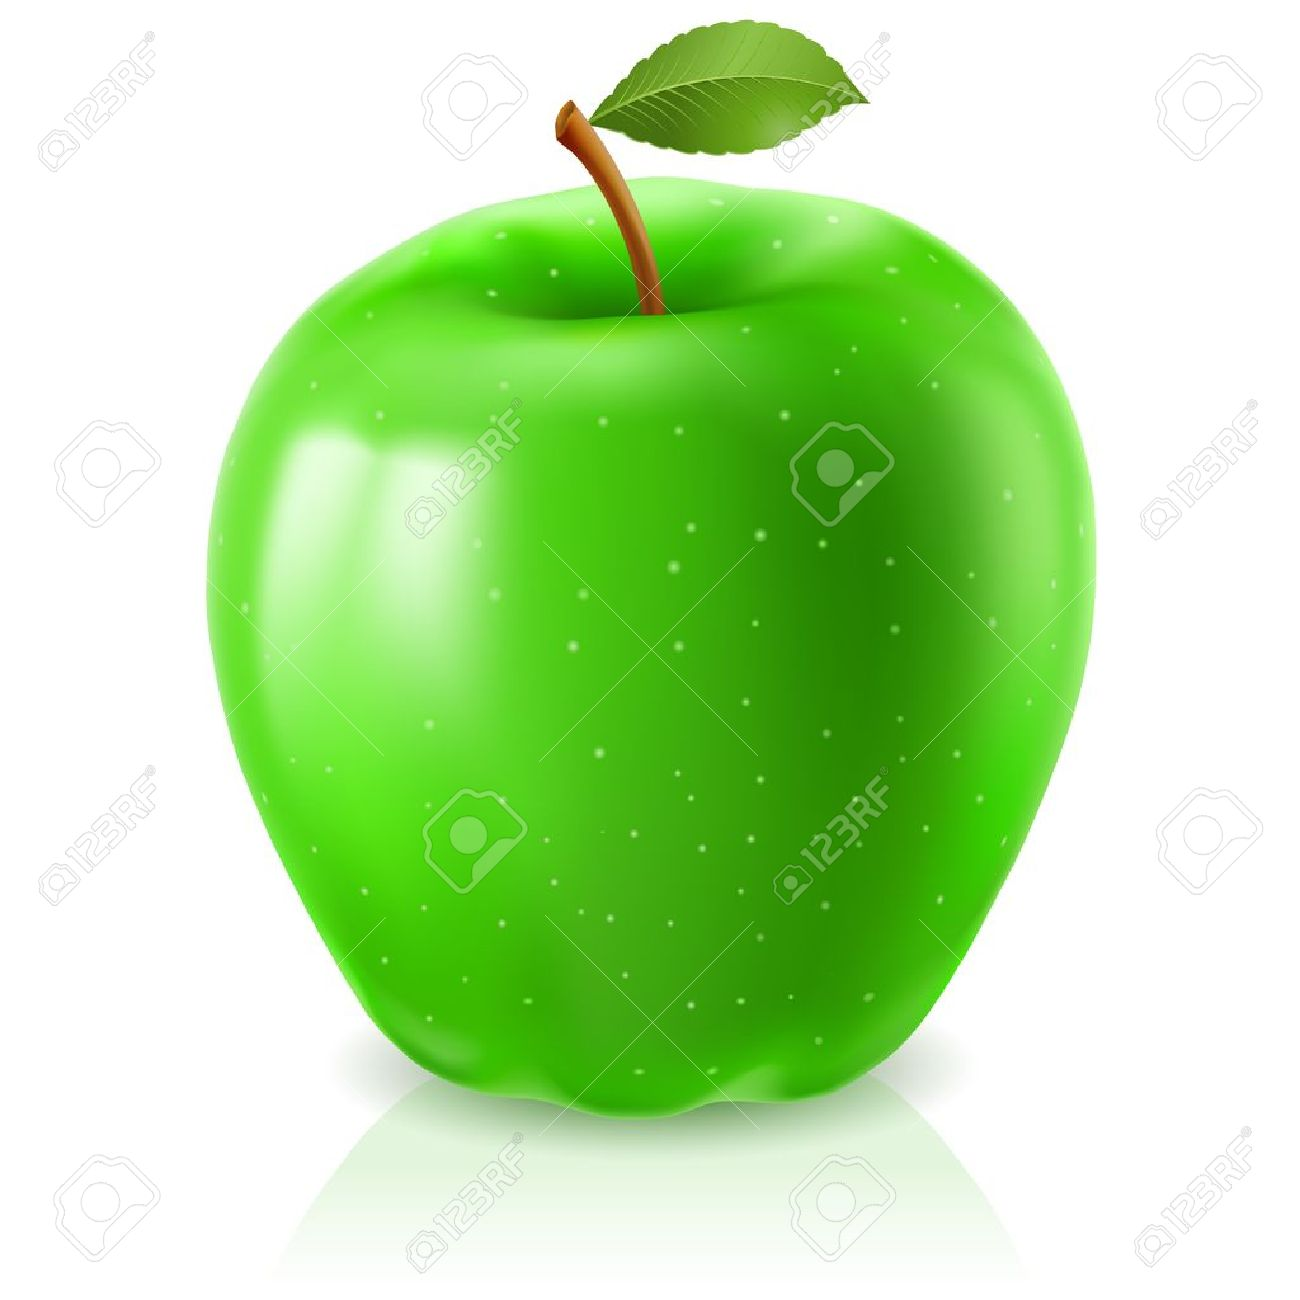 apple green green apple on white background for design - Apple Green Color